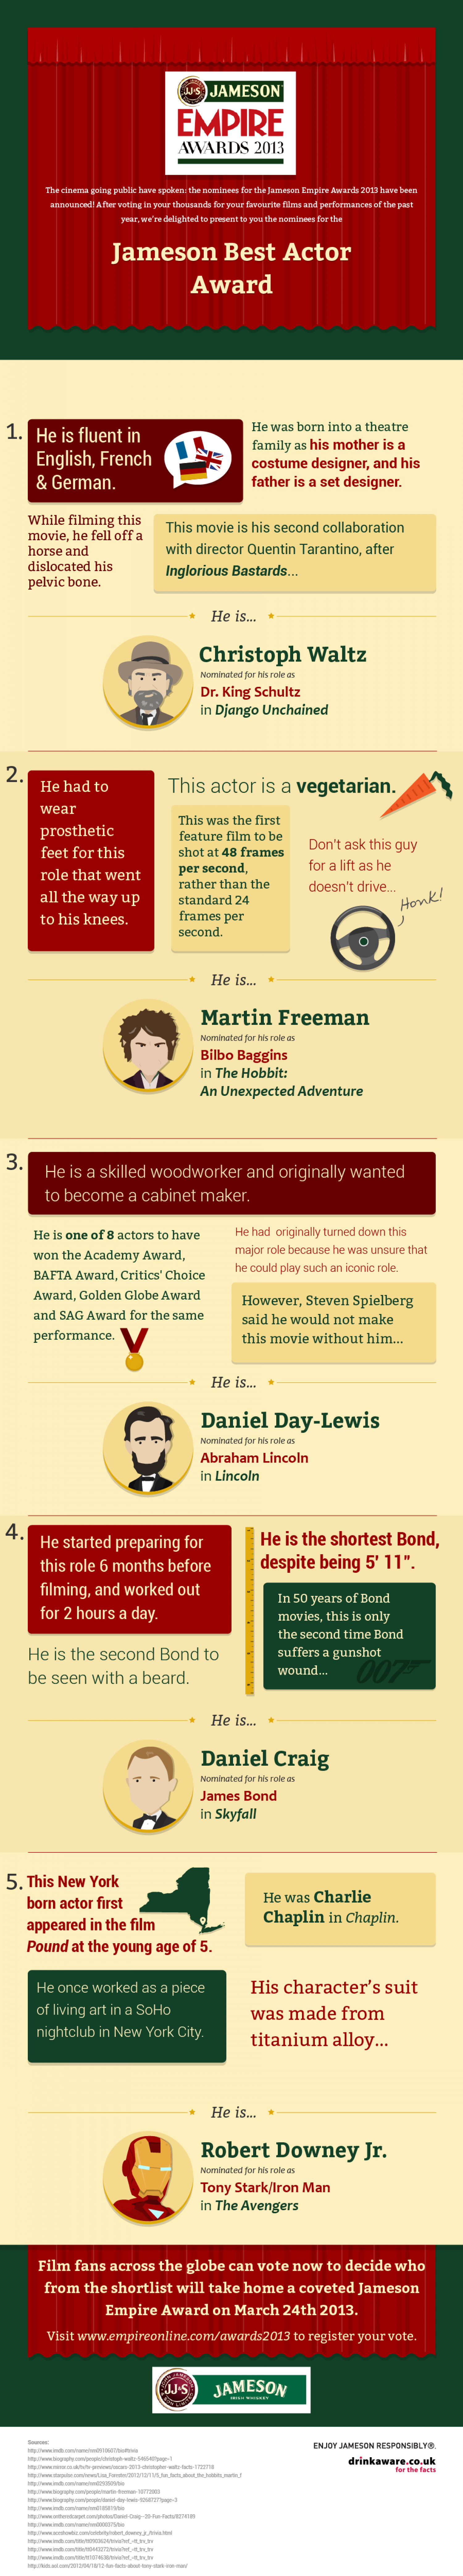 Jameson Empire Awards - Best Actor Nominees Infographic